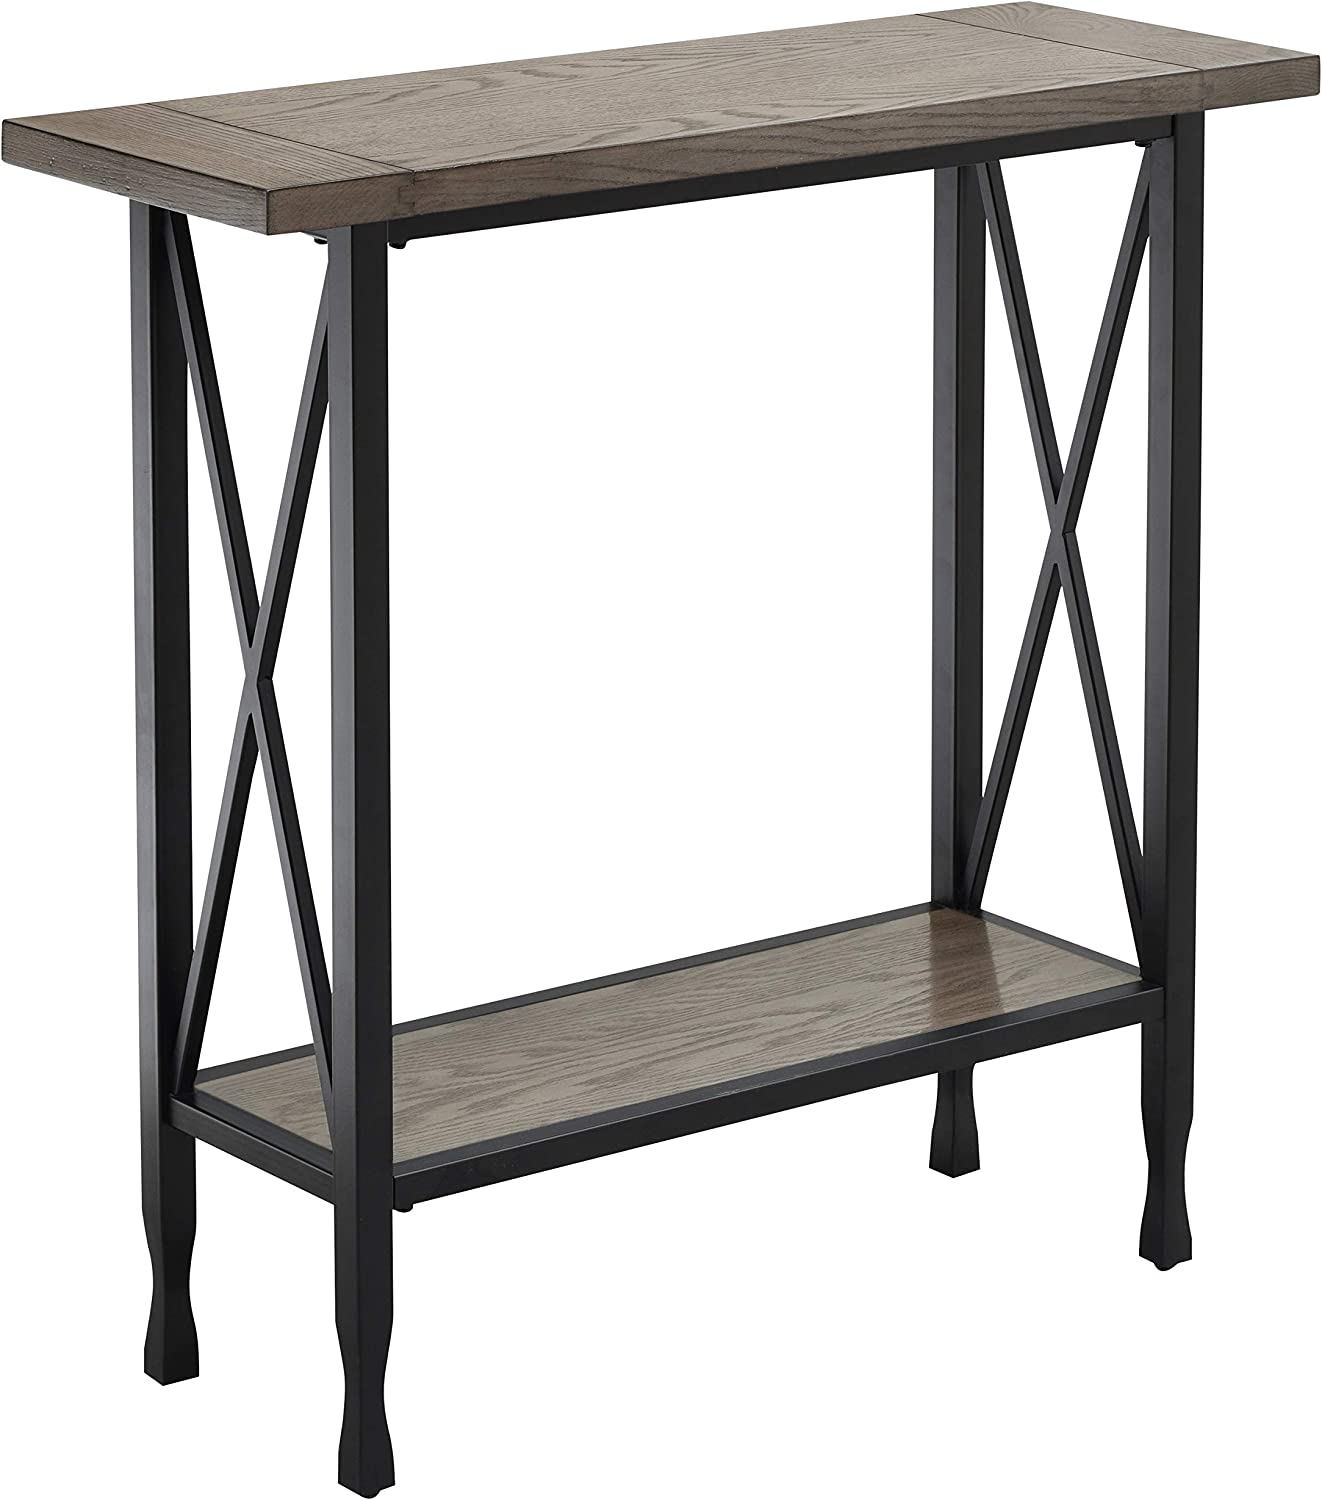 Leick Home Chisel&Forge Hall Console, Smoke Gray/Black